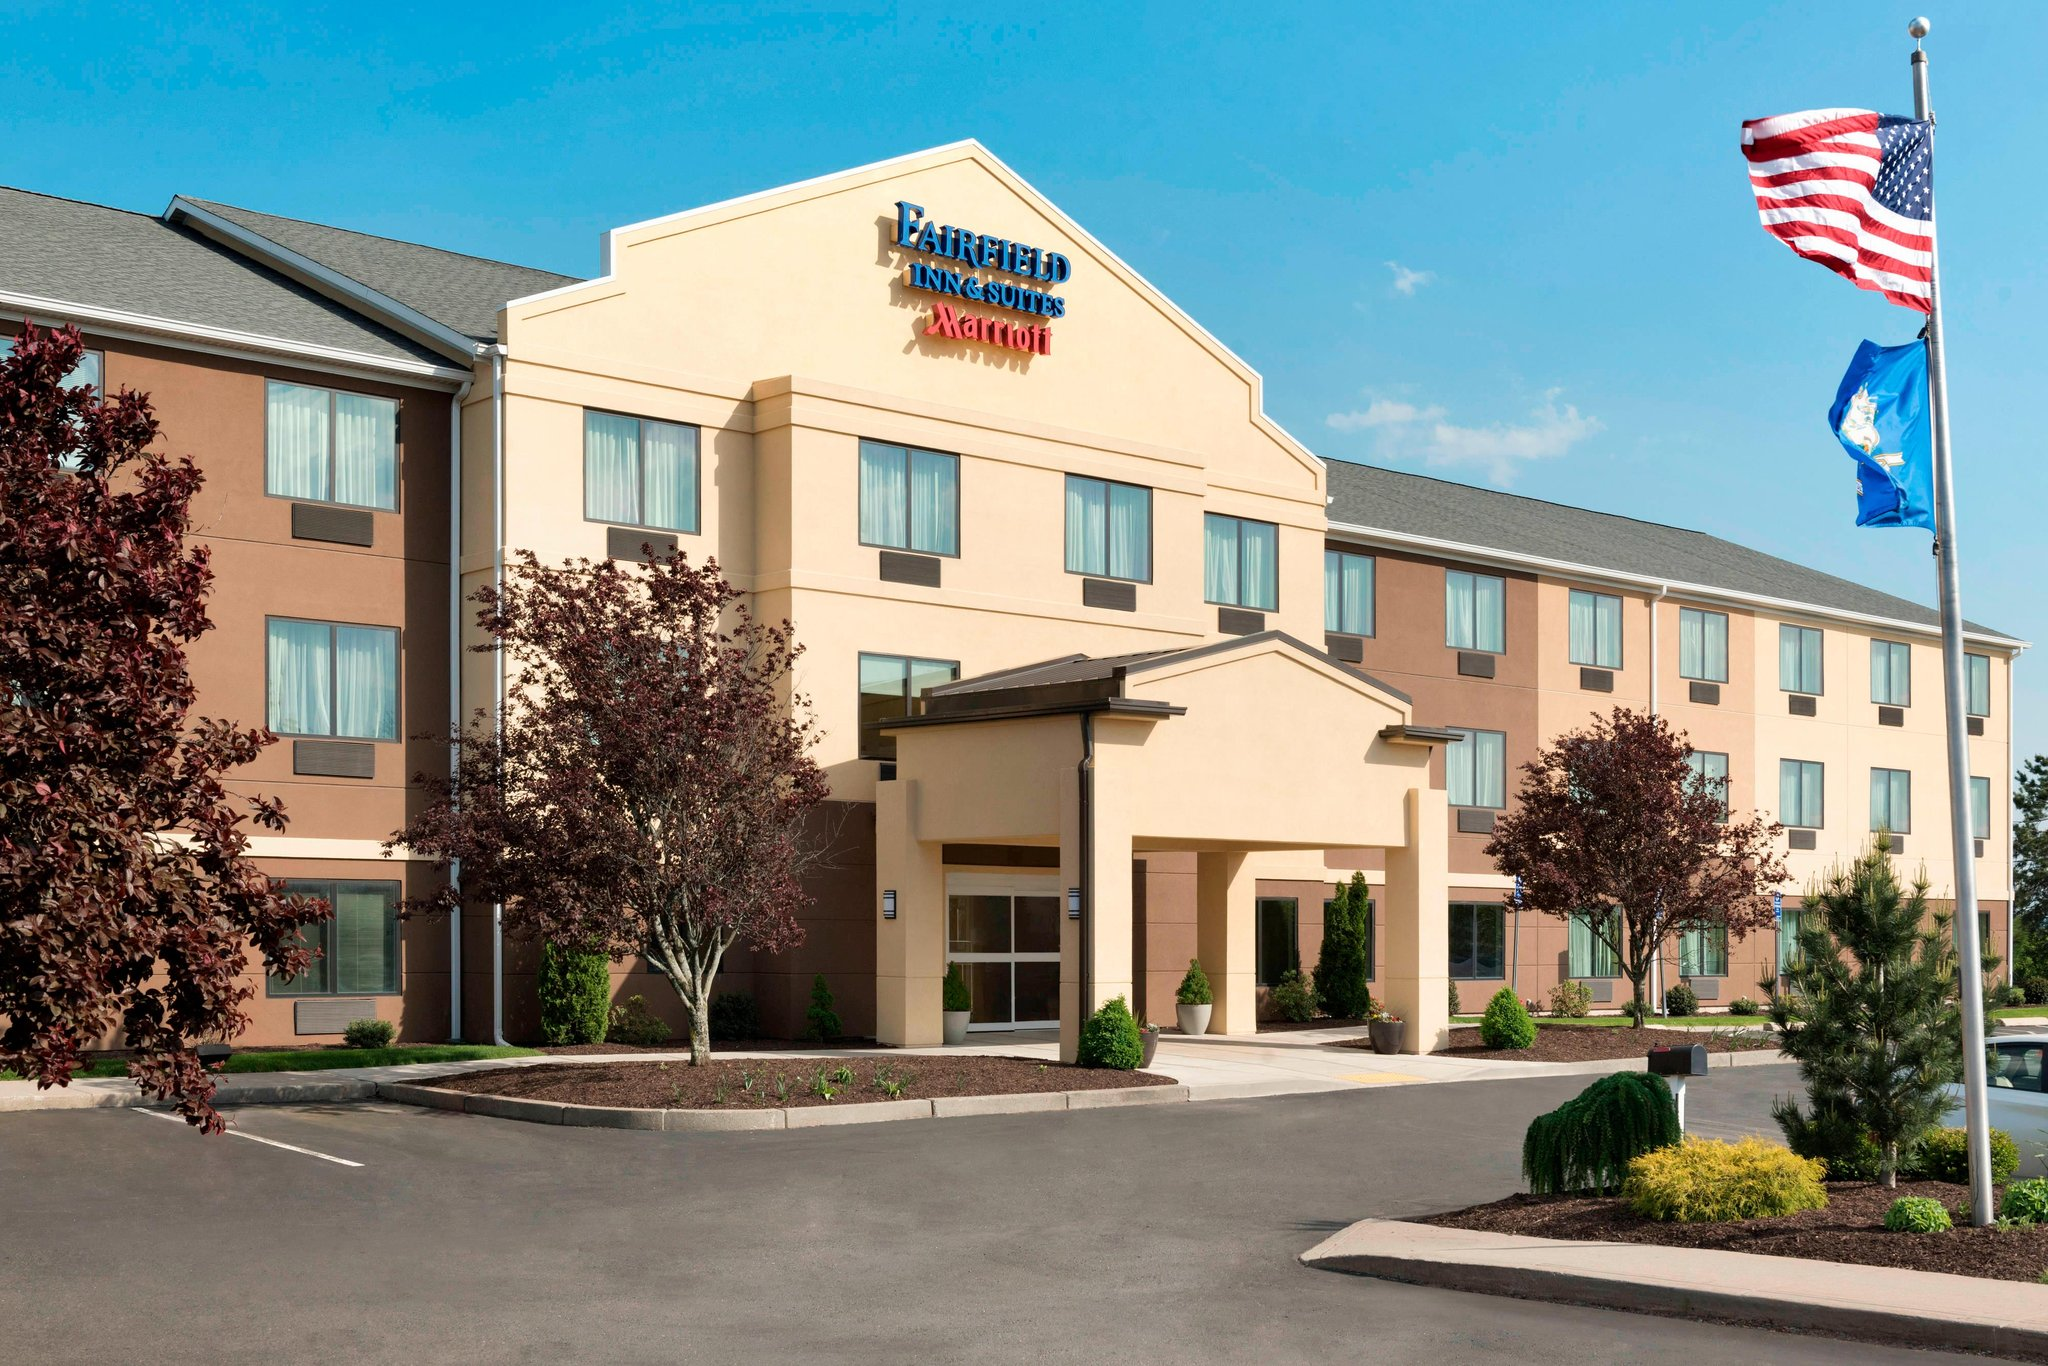 Fairfield Inn & Stes Hartford Manchester